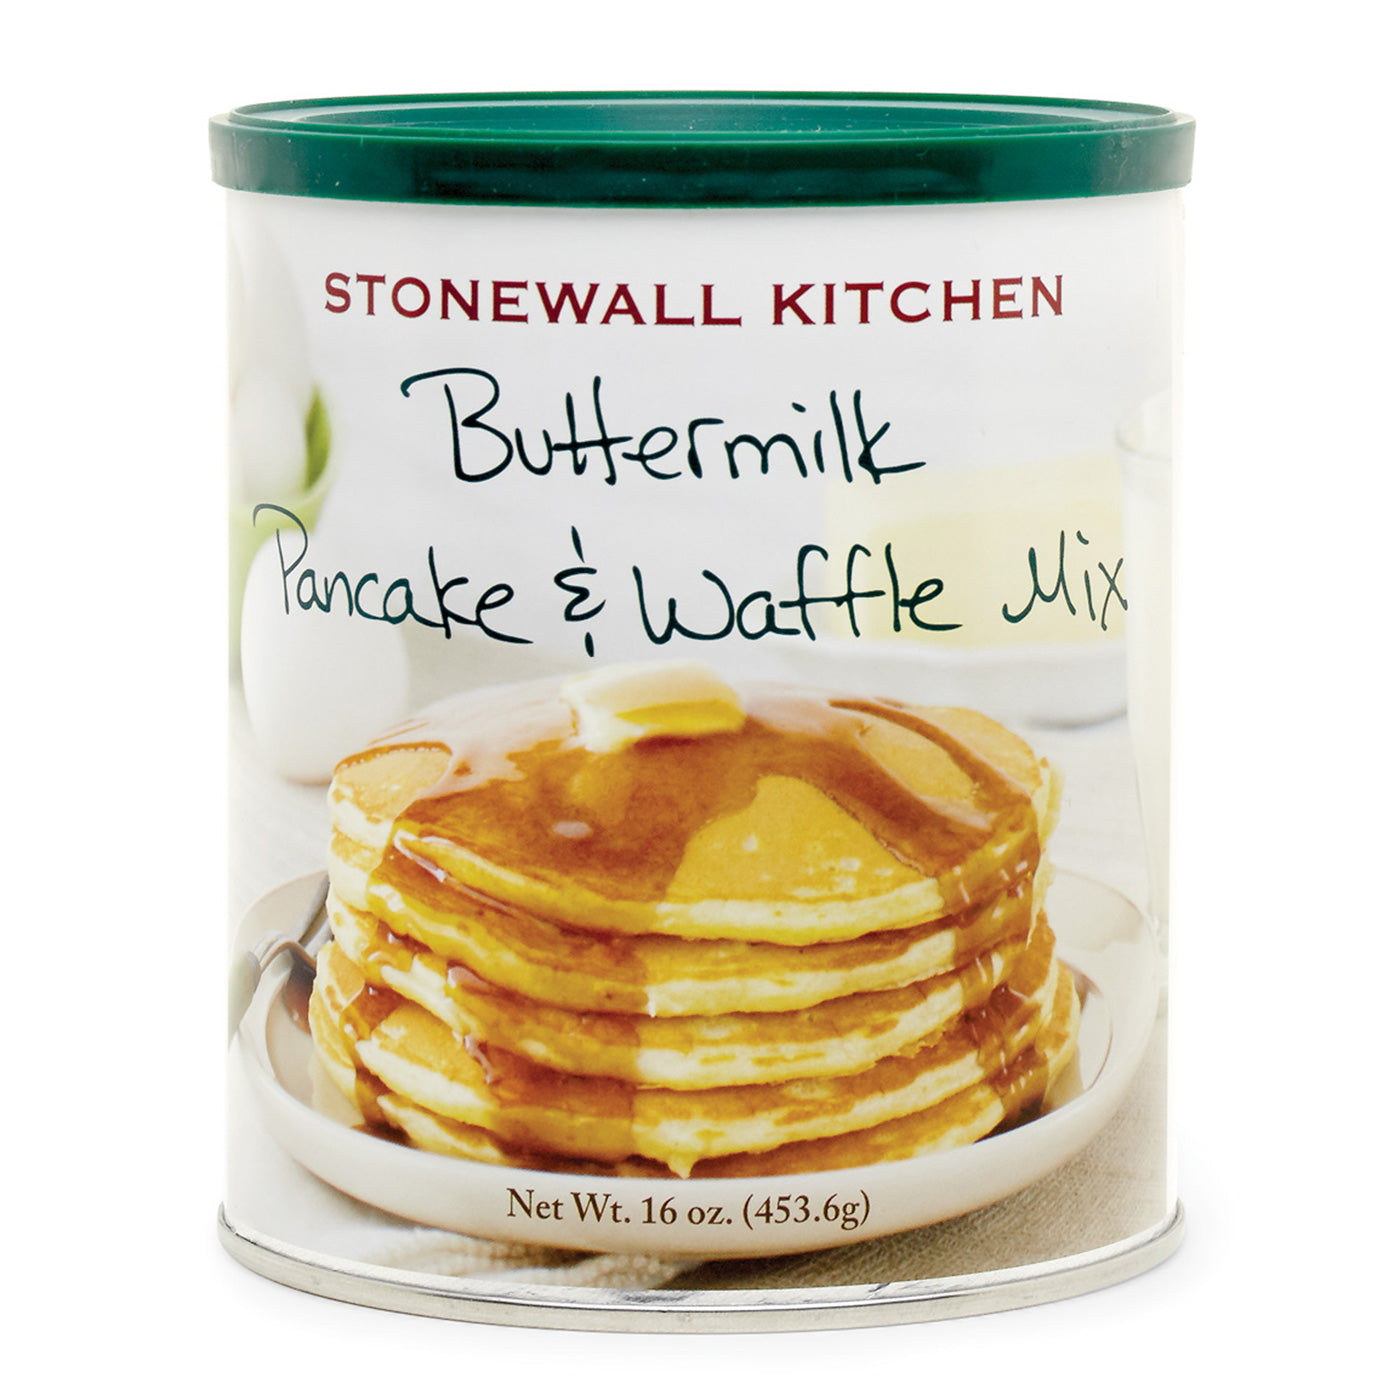 Stonewall Kitchen - Buttermilk Pancake Mix - 16 oz